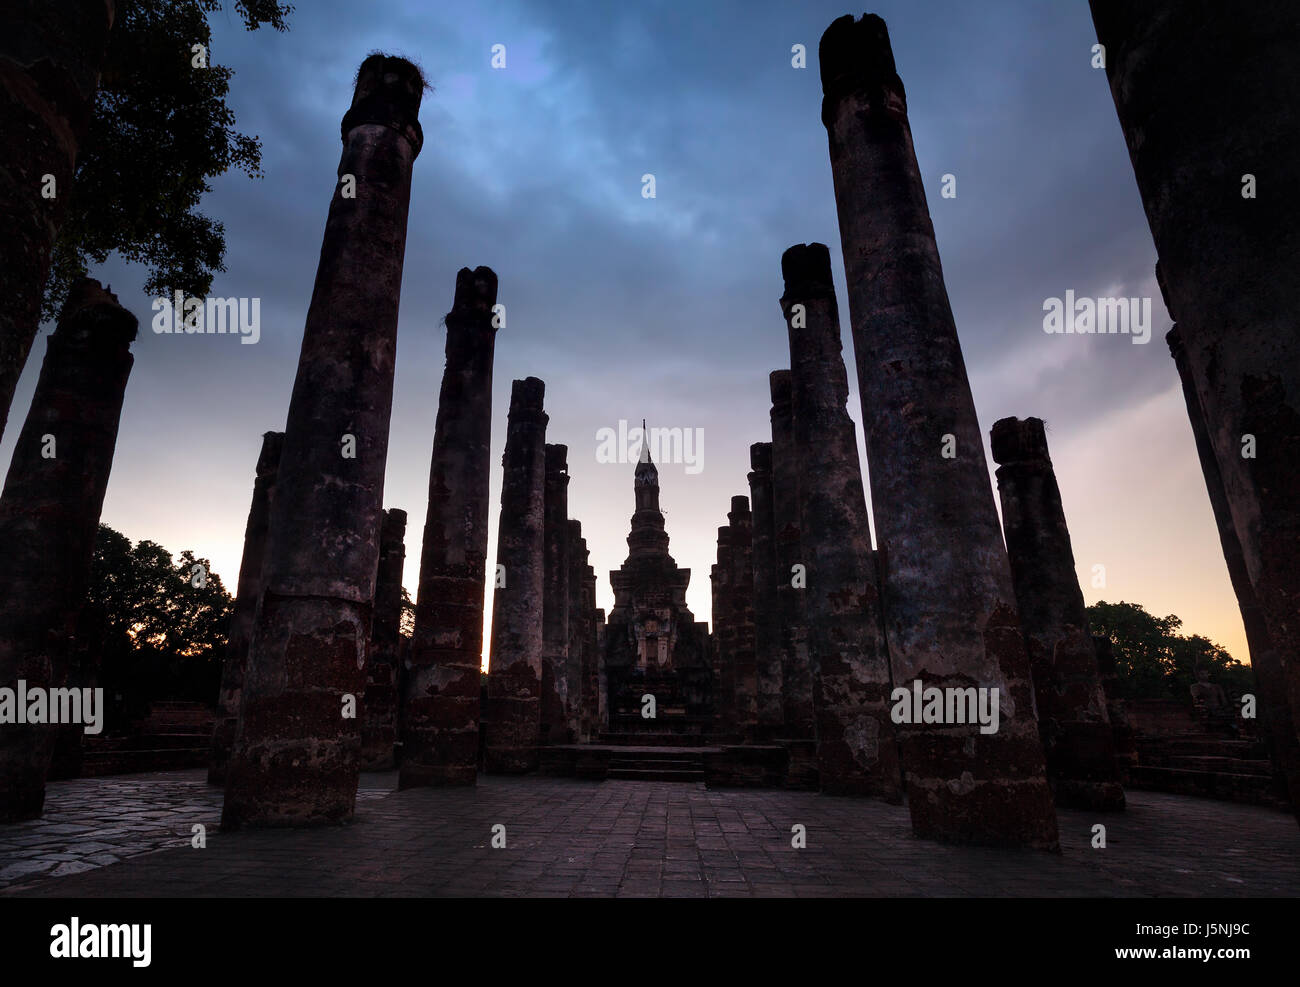 Ancient ruined column of Temple in Sukhothai at overcast sunset sky, Thailand - Stock Image